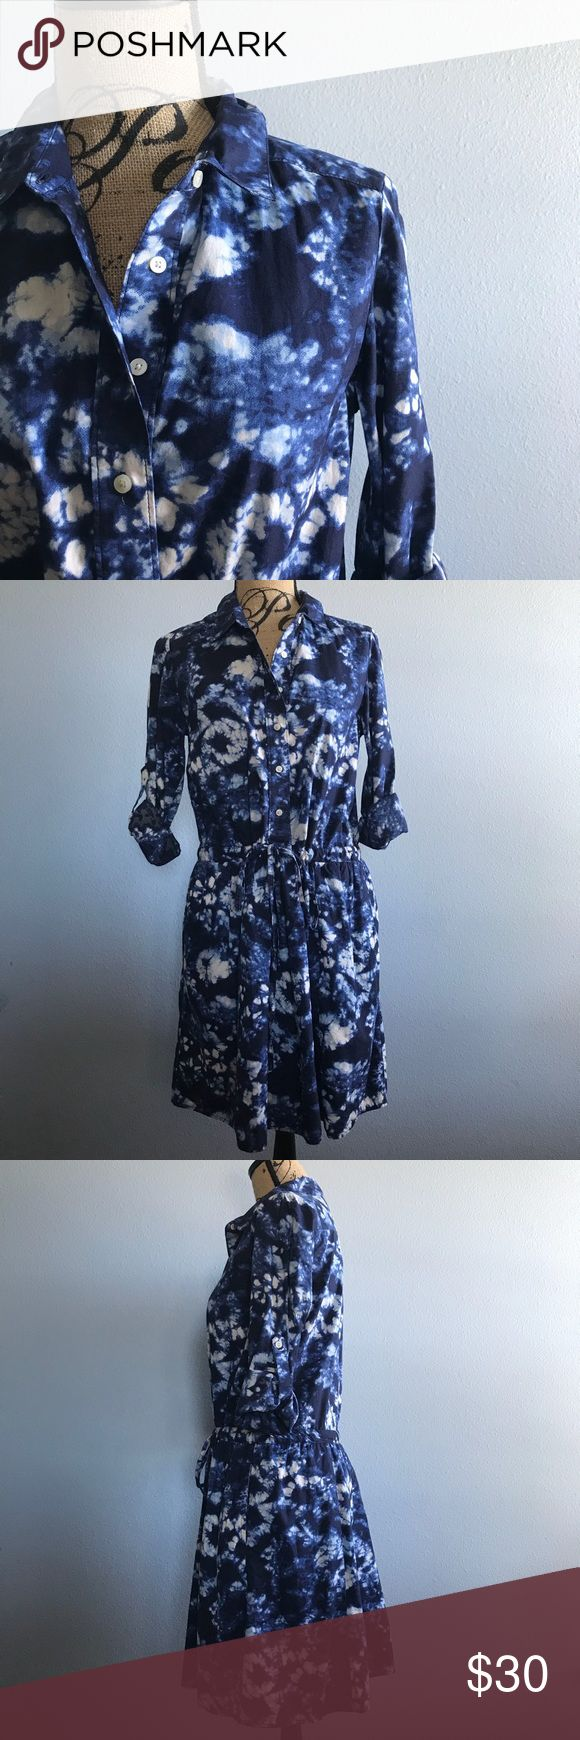 """GAP Tie-Dye T-shirt Dress GAP Tie-Dye T-shirt Dress Size Small, Blue and White, fully Lined Skirt, has 2 pockets on side of Skirt, Roll tab sleeves, Long Sleeve, Button Up, NWOT, Smoke Free Home  Measurements are approx  Length: 35"""" Sleeves rolled: 14"""" Waist: 34"""" Chest: 38"""" GAP Dresses Midi"""